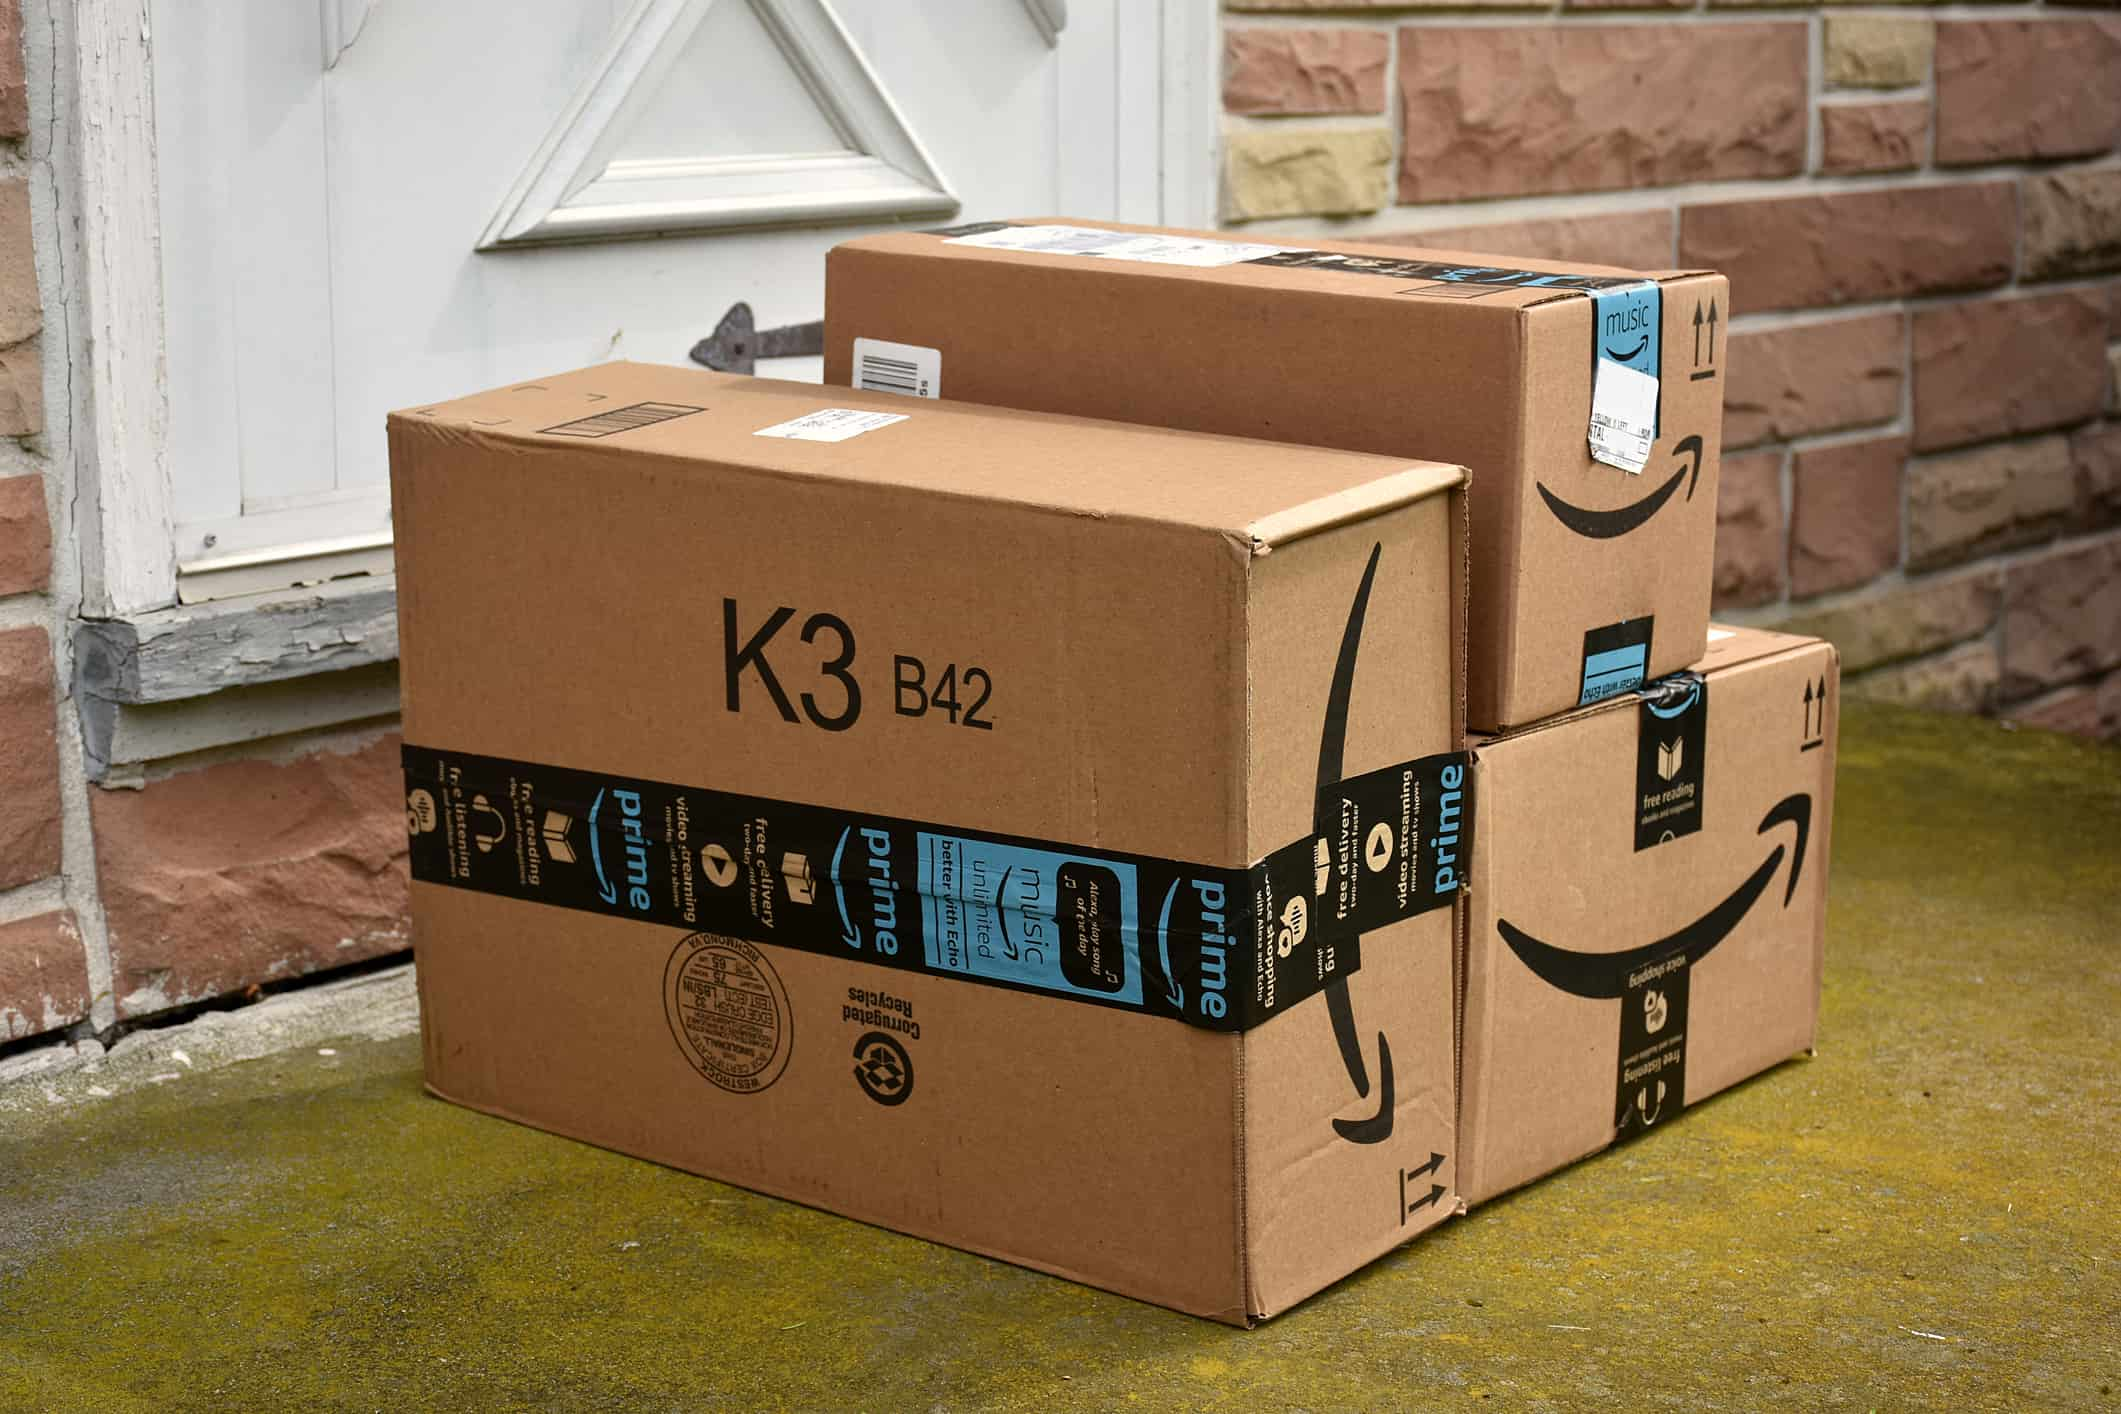 Amazon Prime boxes at front door of home.